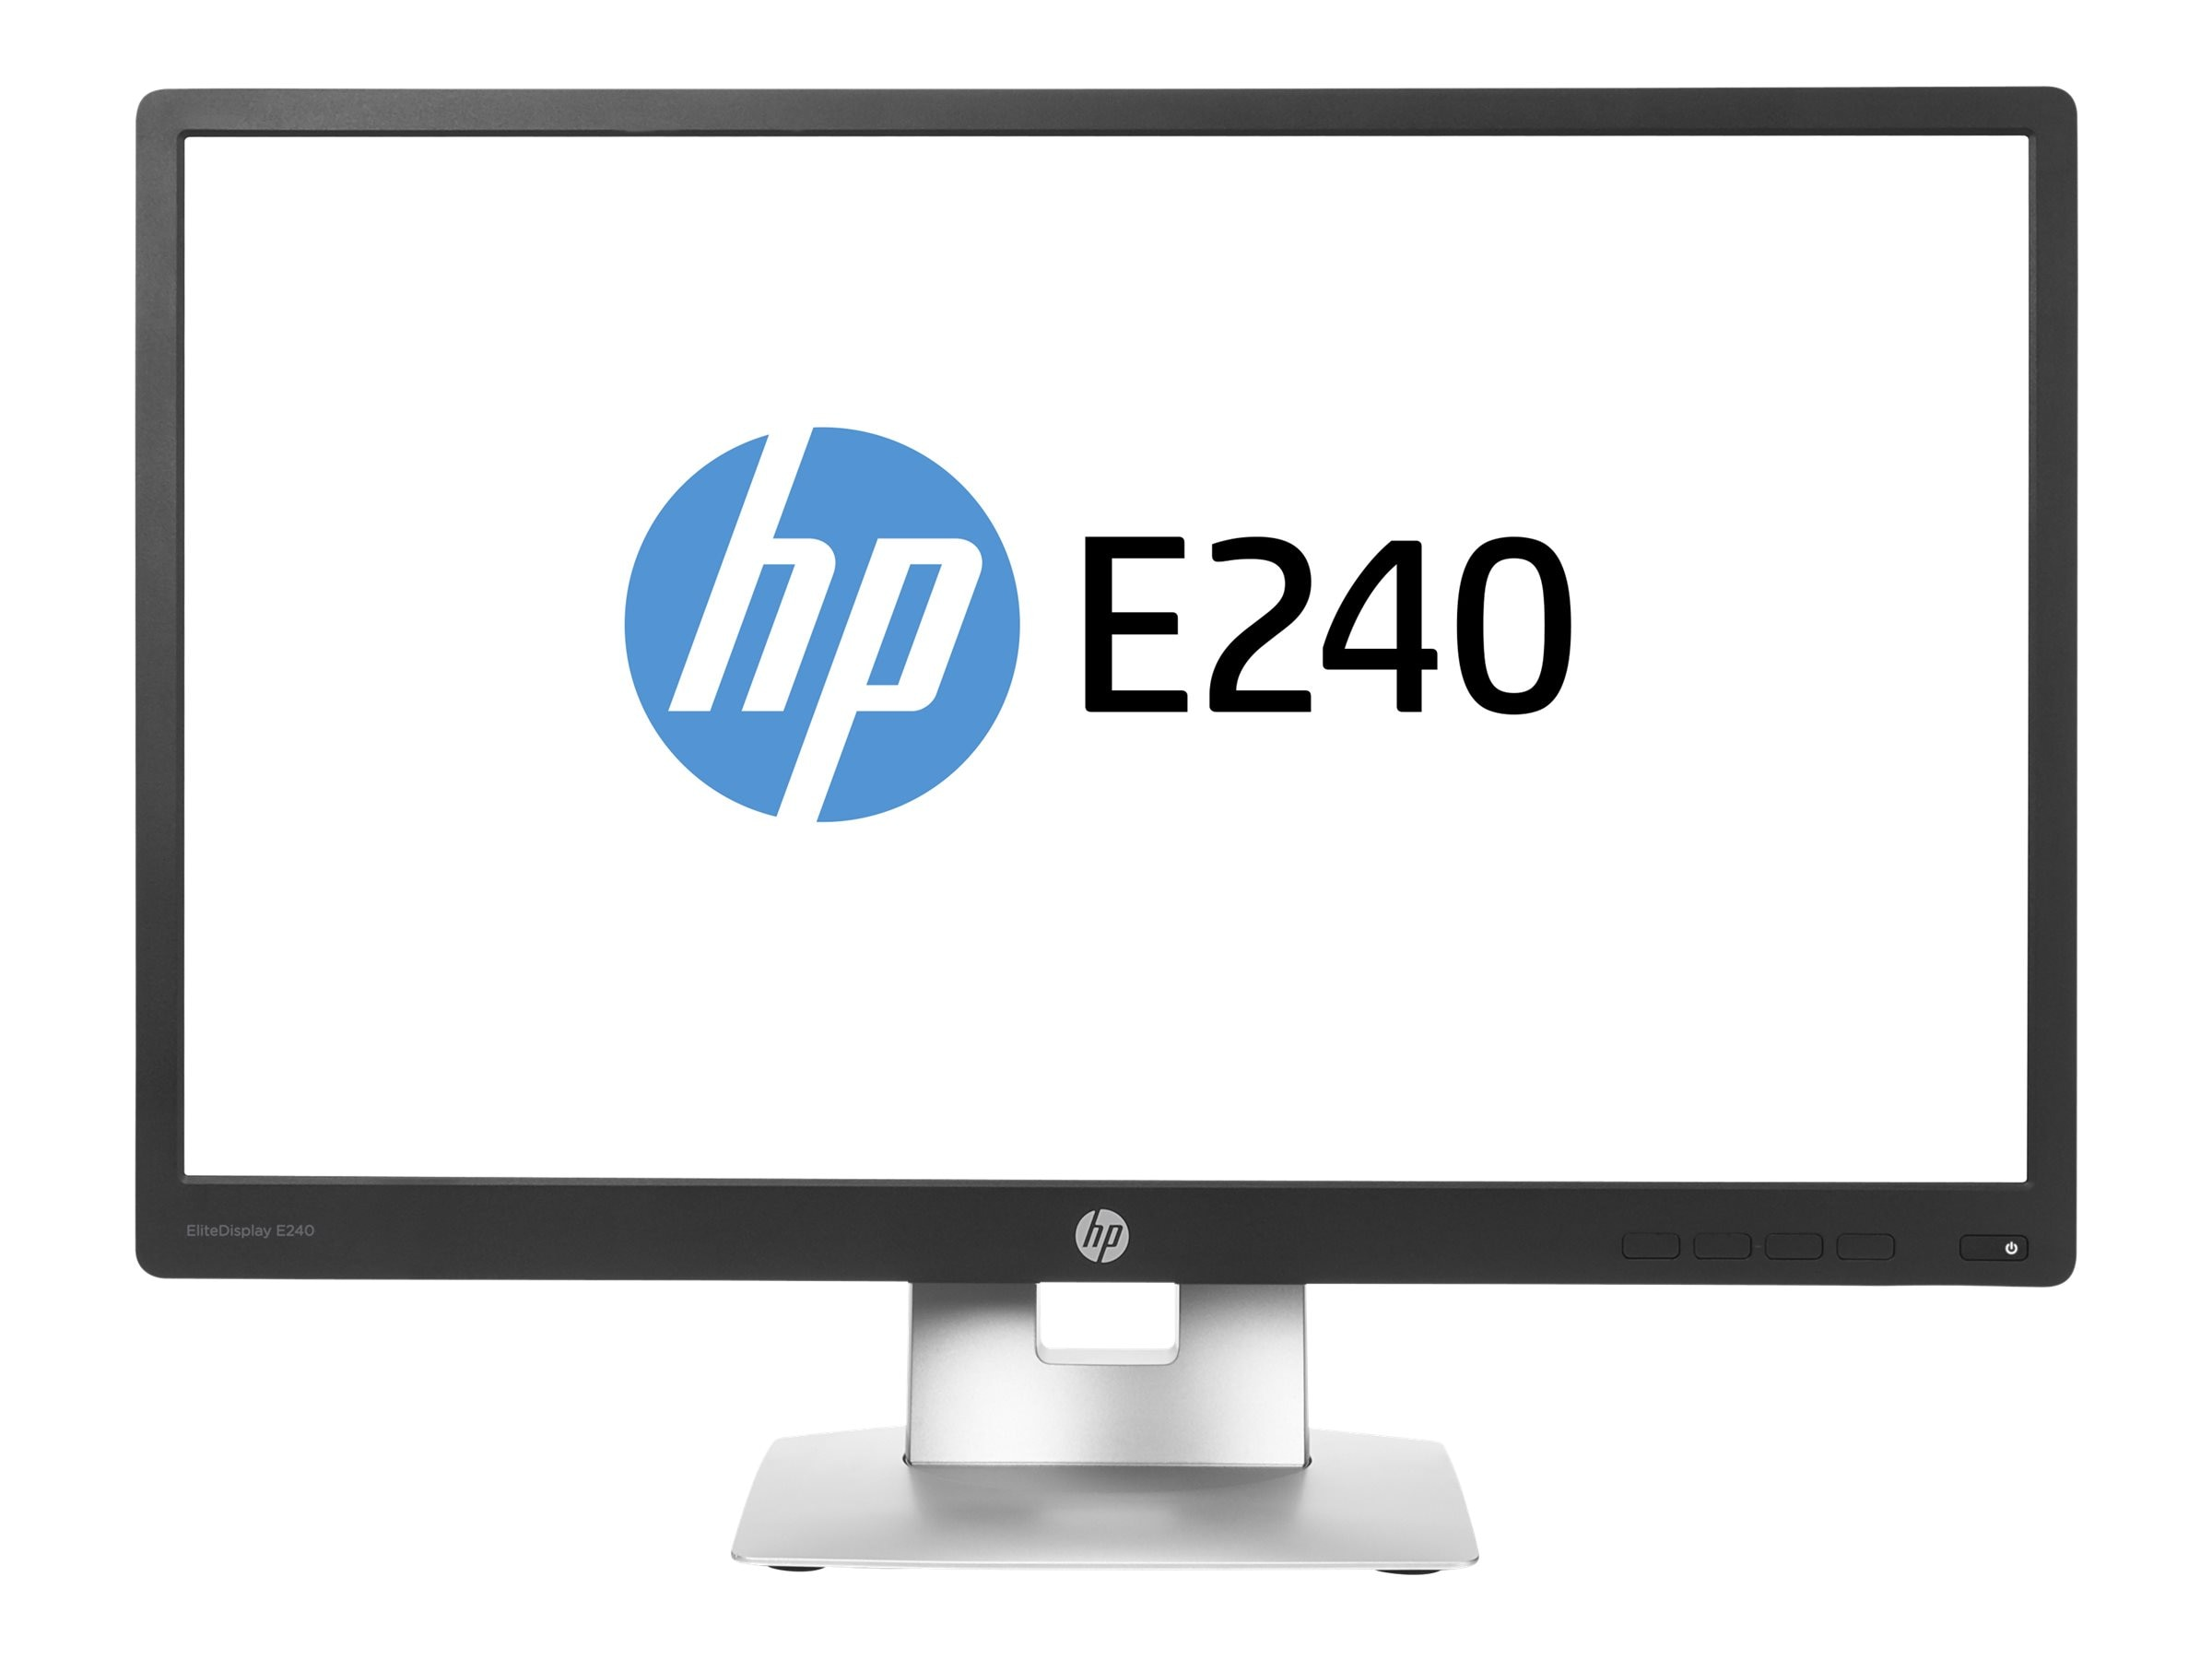 HP 23.8 E240 Full HD LED-LCD Monitor, Black, M1N99A8#ABA